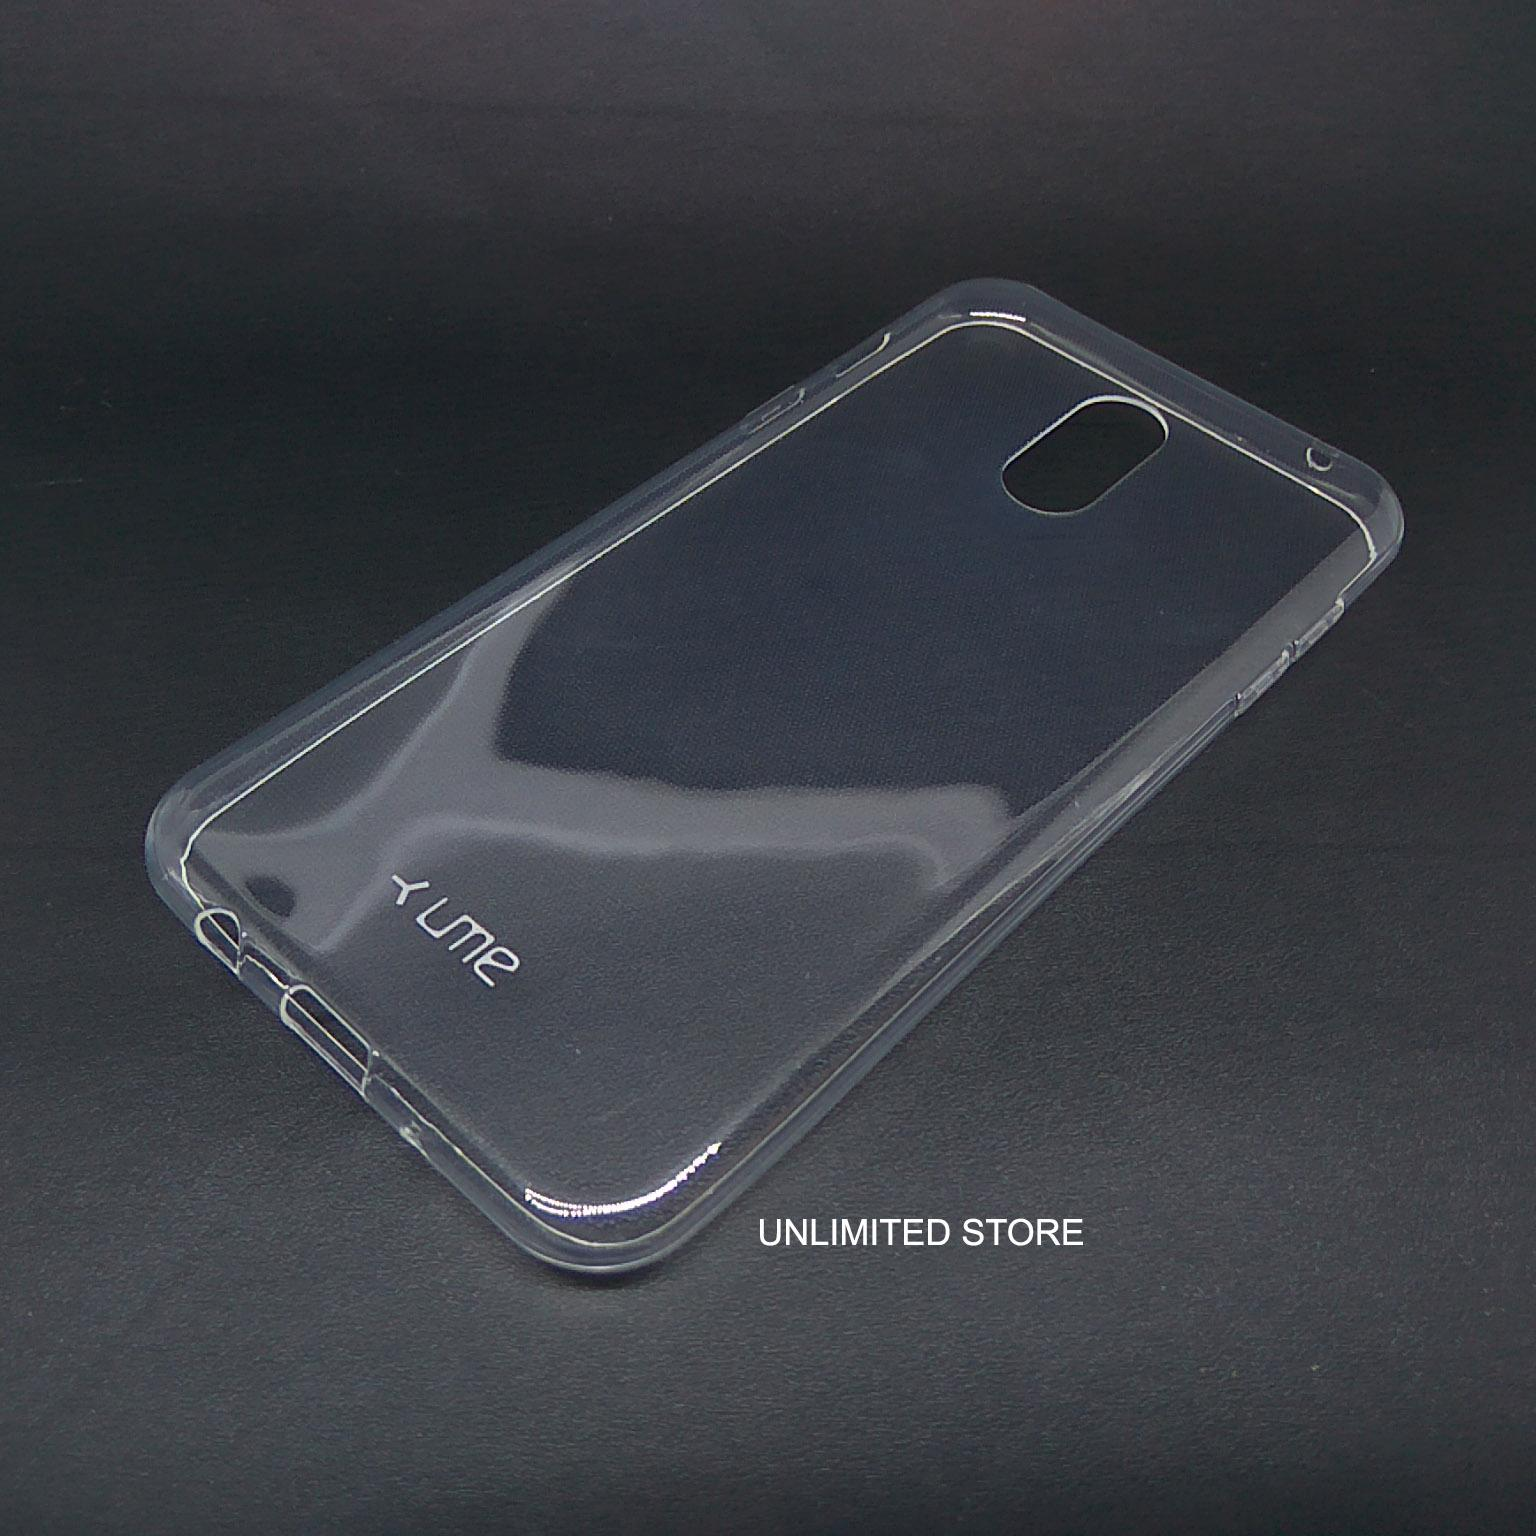 Gambar Produk Rinci Ultrathin Softcase UME TPU Samsung Galaxy J7 Plus Casing Ultra thin Soft case